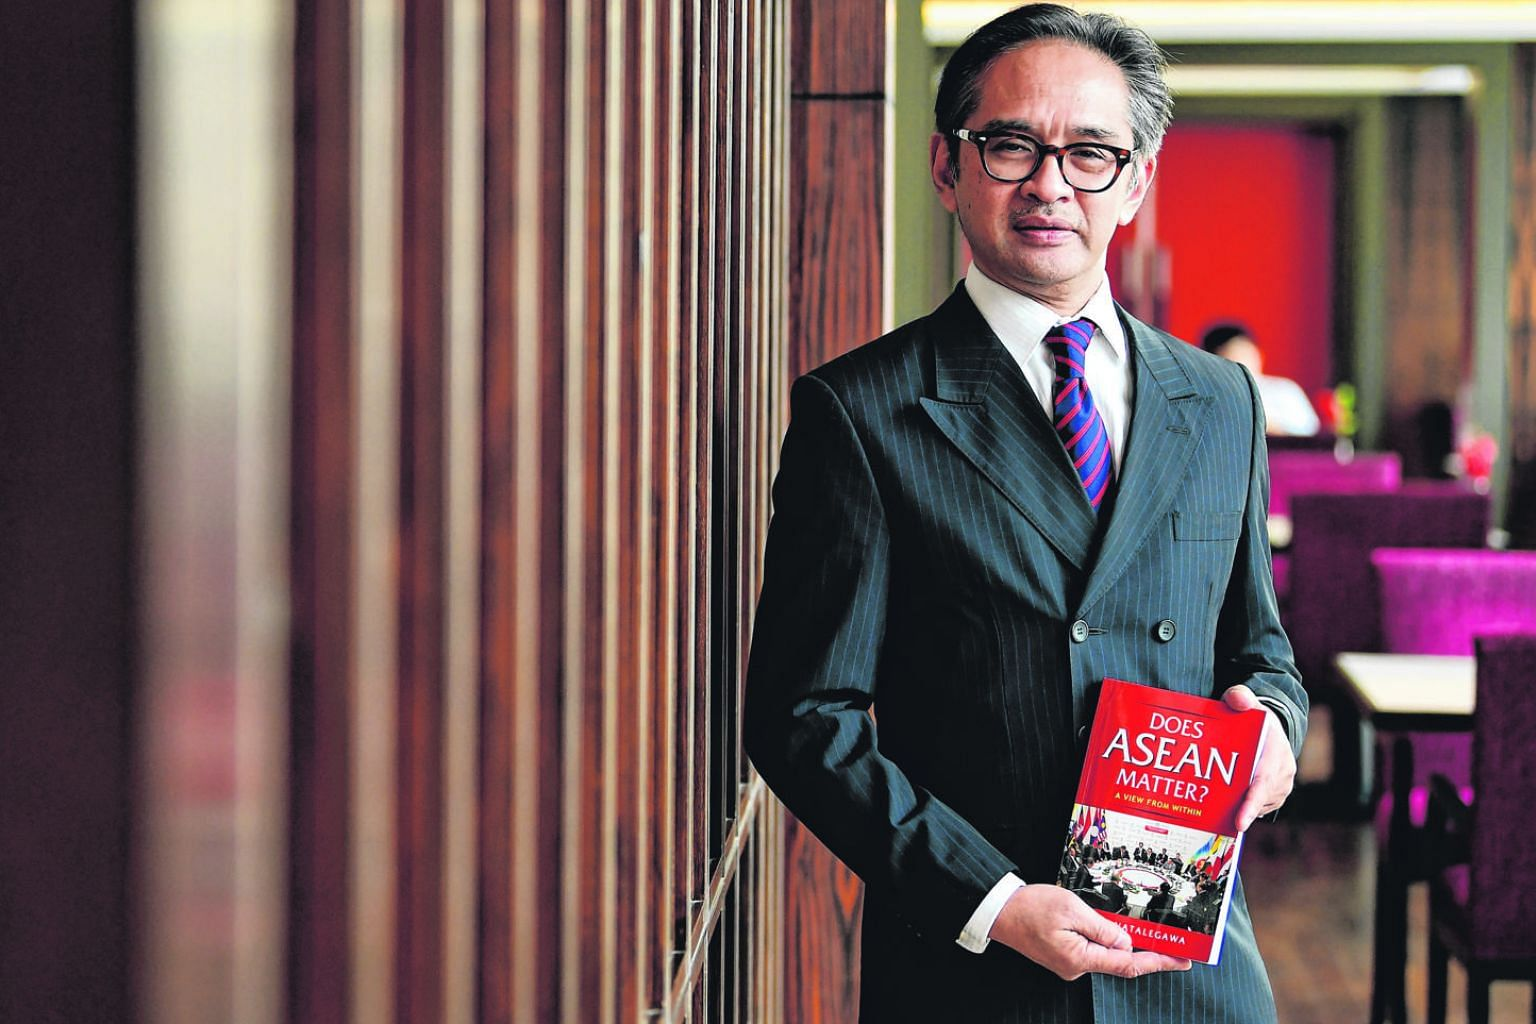 Dr Marty Natalegawa, former foreign minister of Indonesia, with his new book, Does ASEAN Matter?, which will be launched at ISEAS-Yusof Ishak Institute tomorrow.